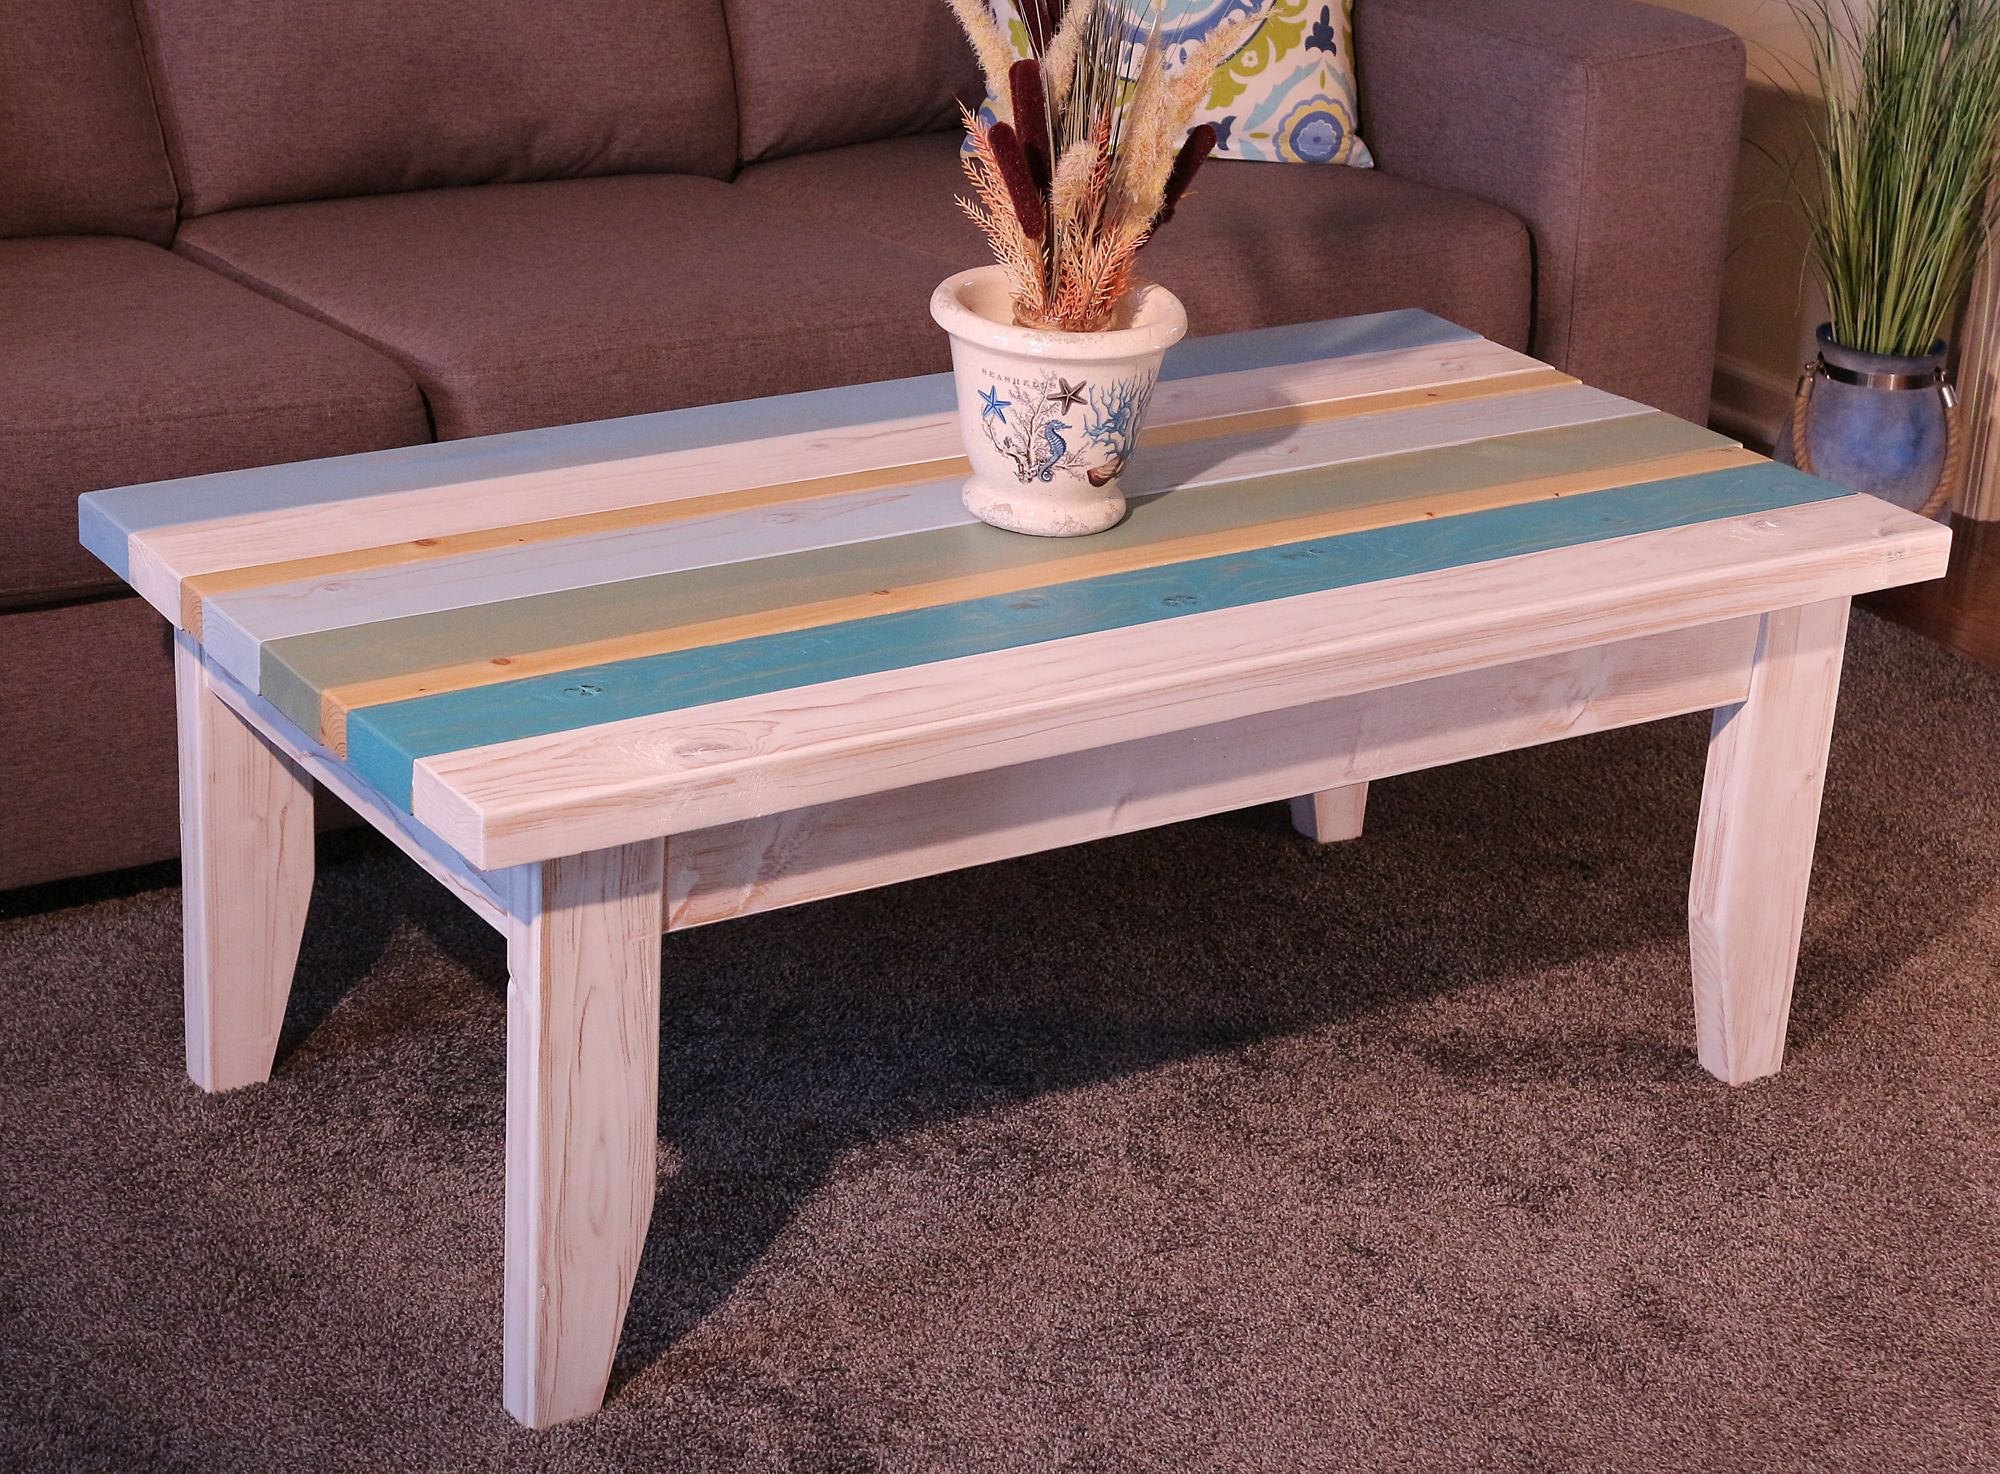 Beach Coastal Style Multicolored Coffee Table With White Trim